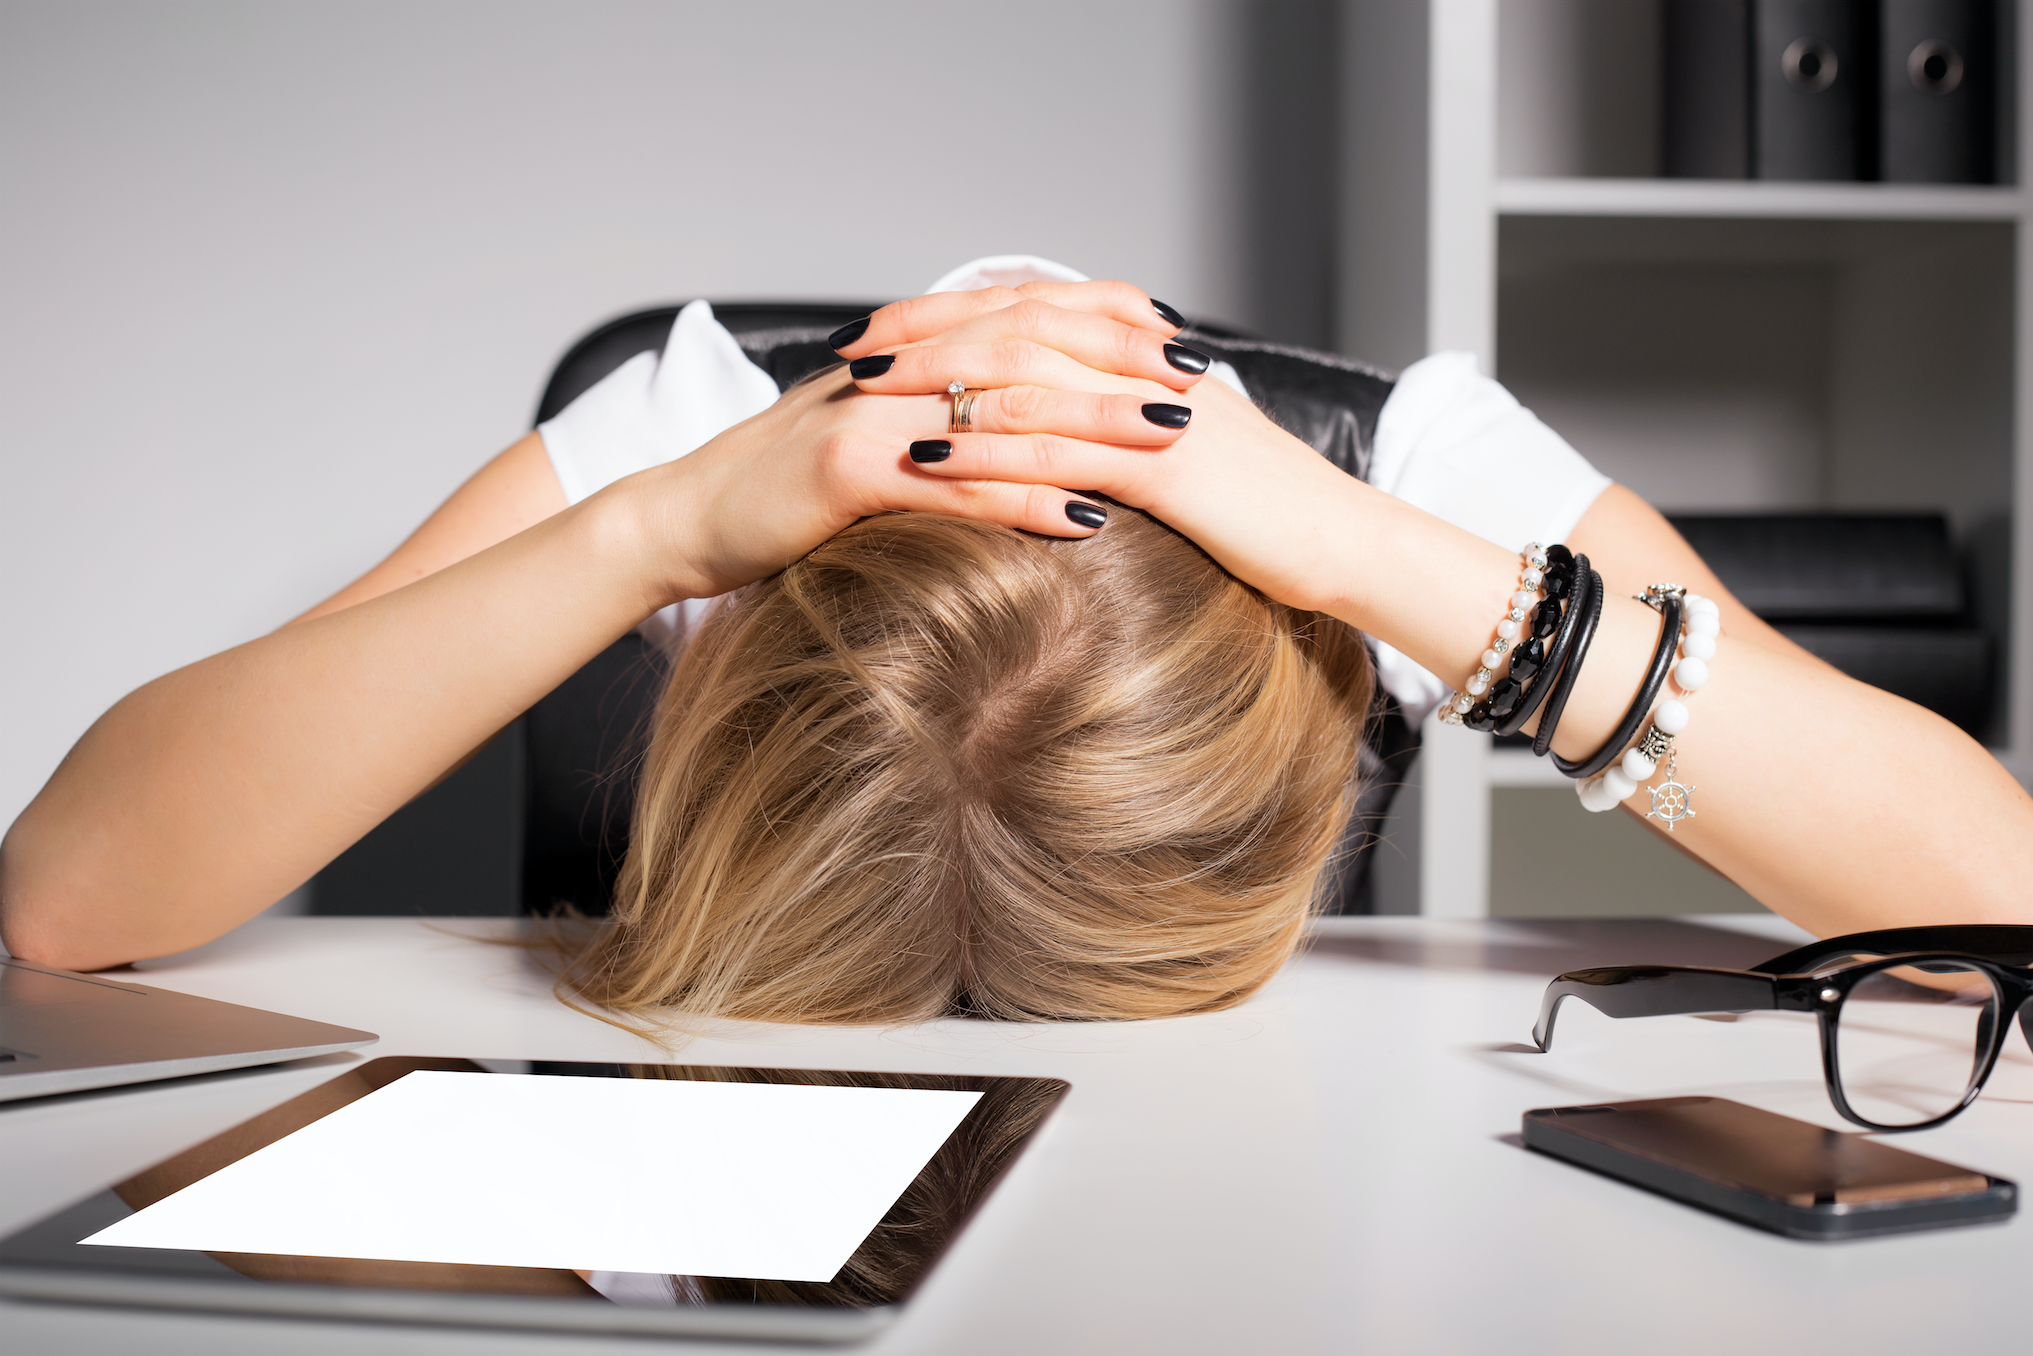 What Should You Do When You Are Frustrated With Work?